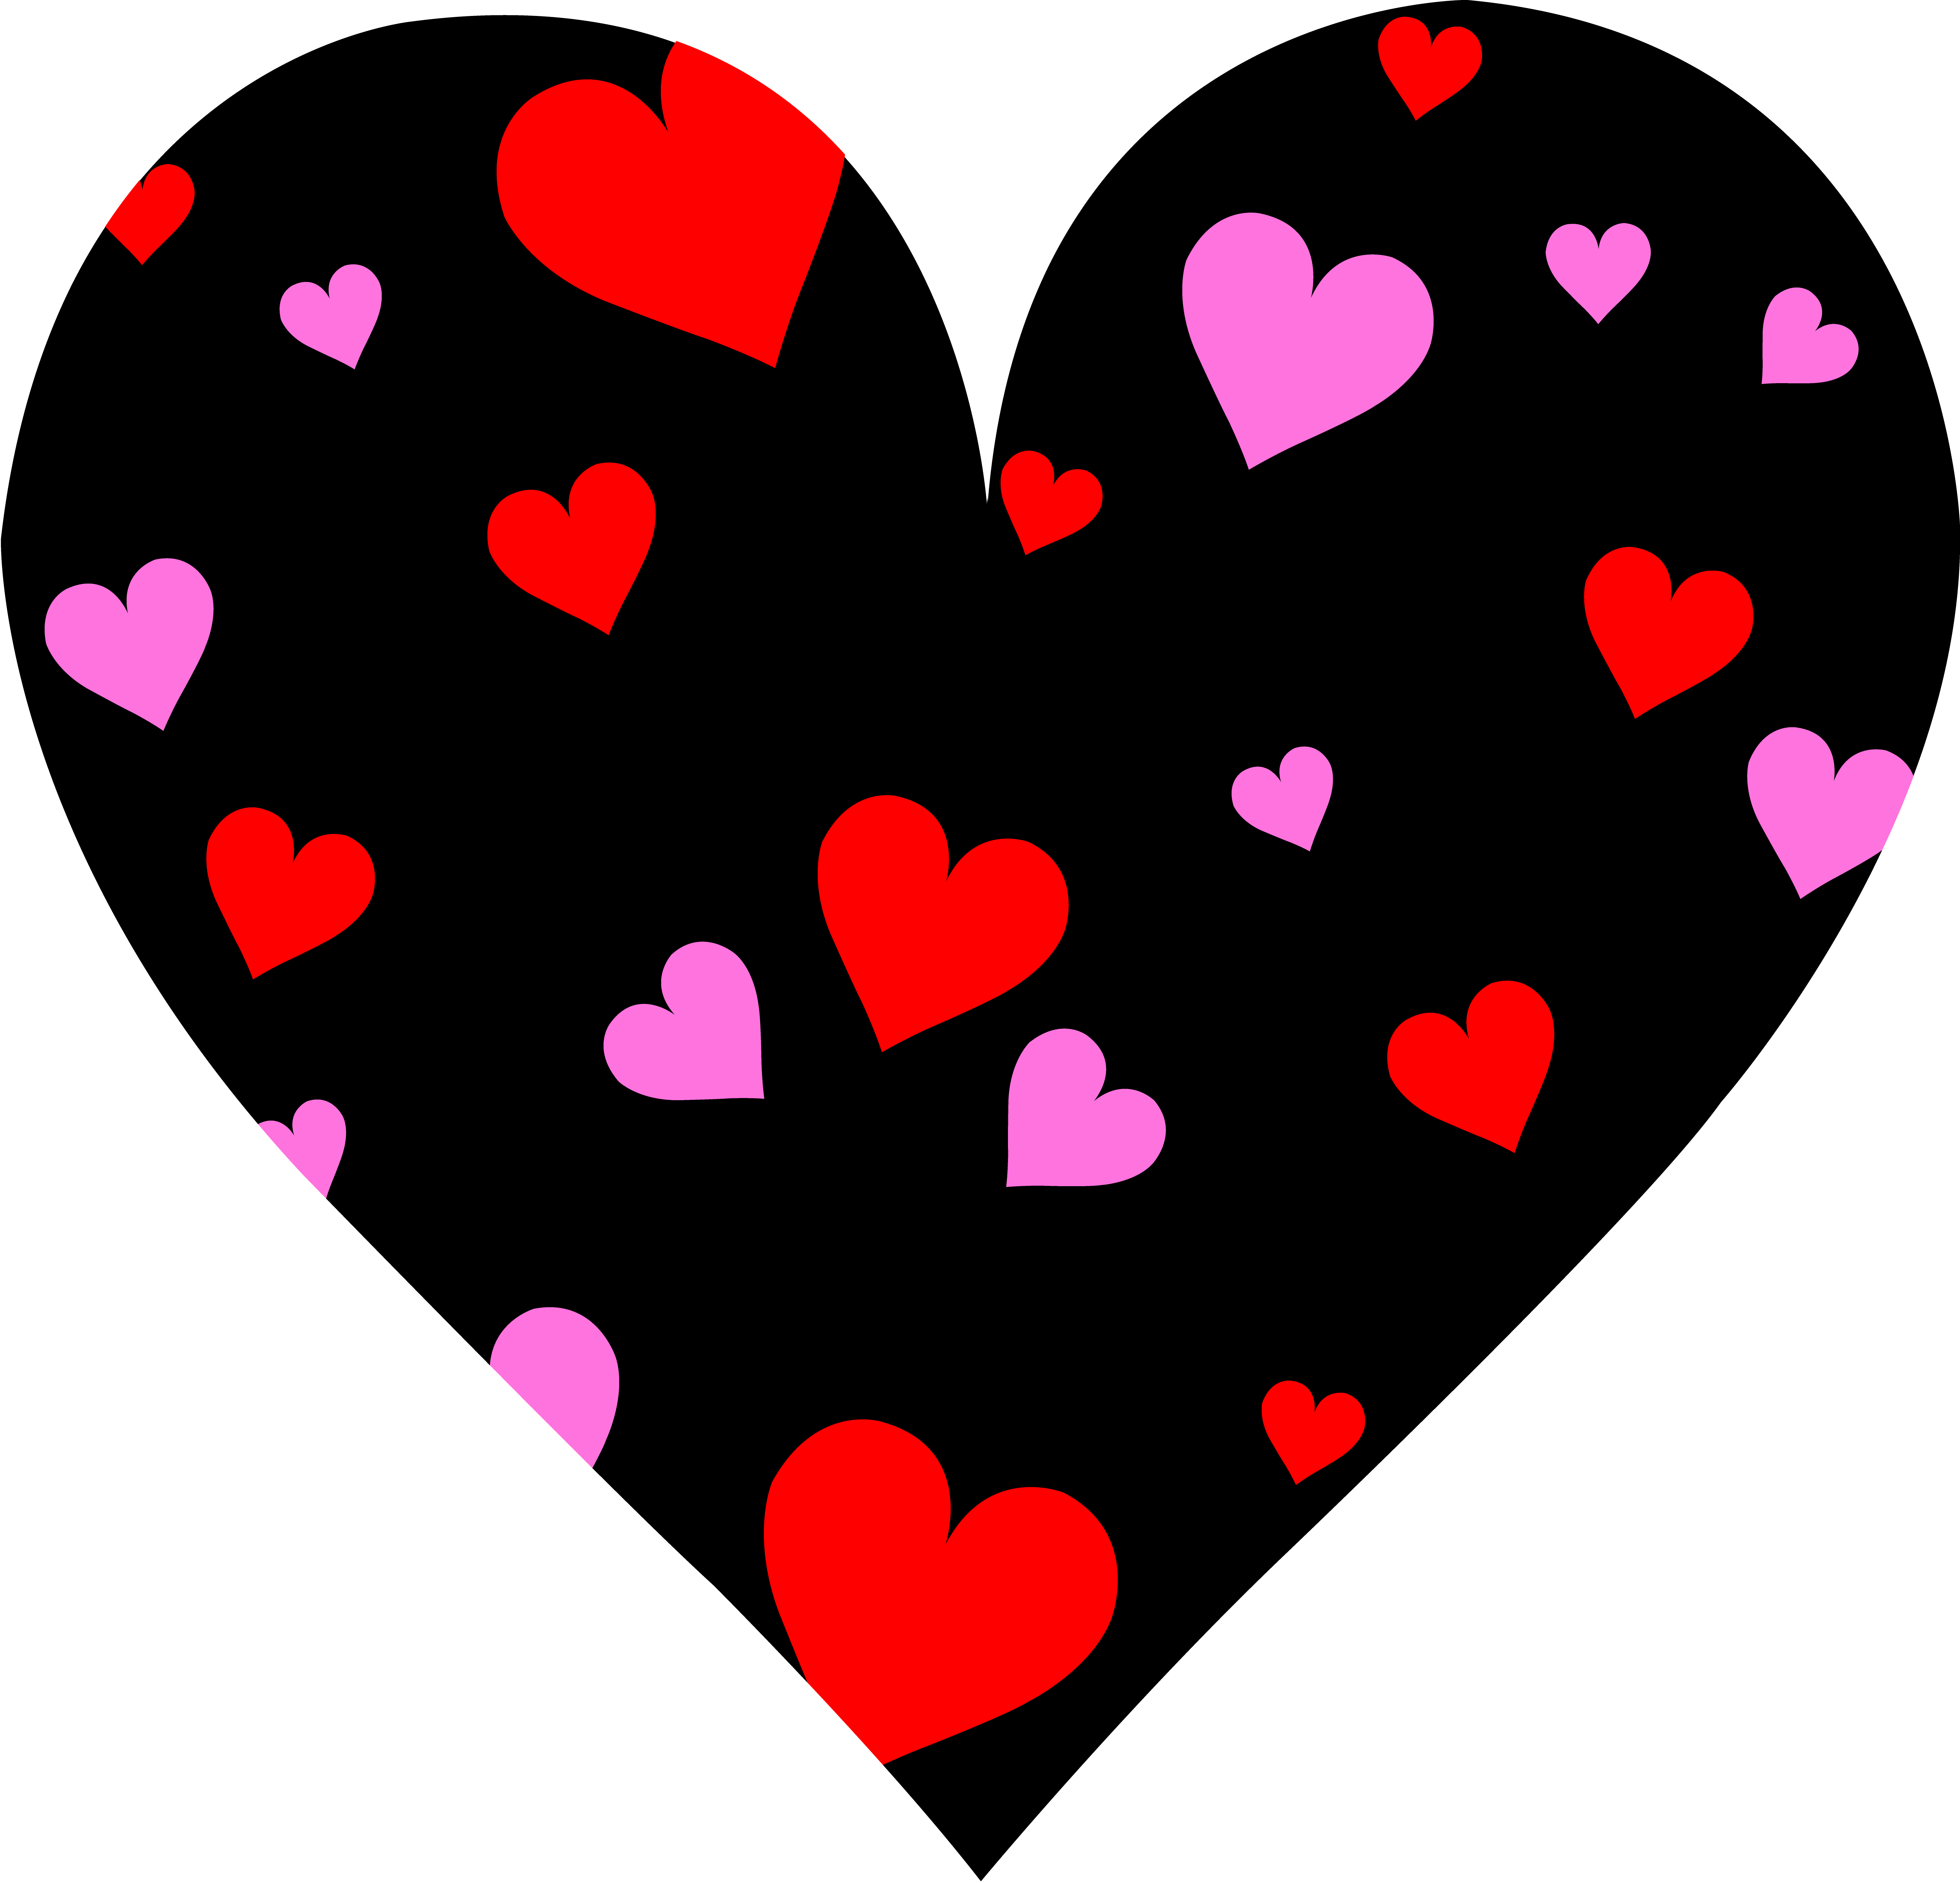 free download Love clipart heart. Panda free images hearts